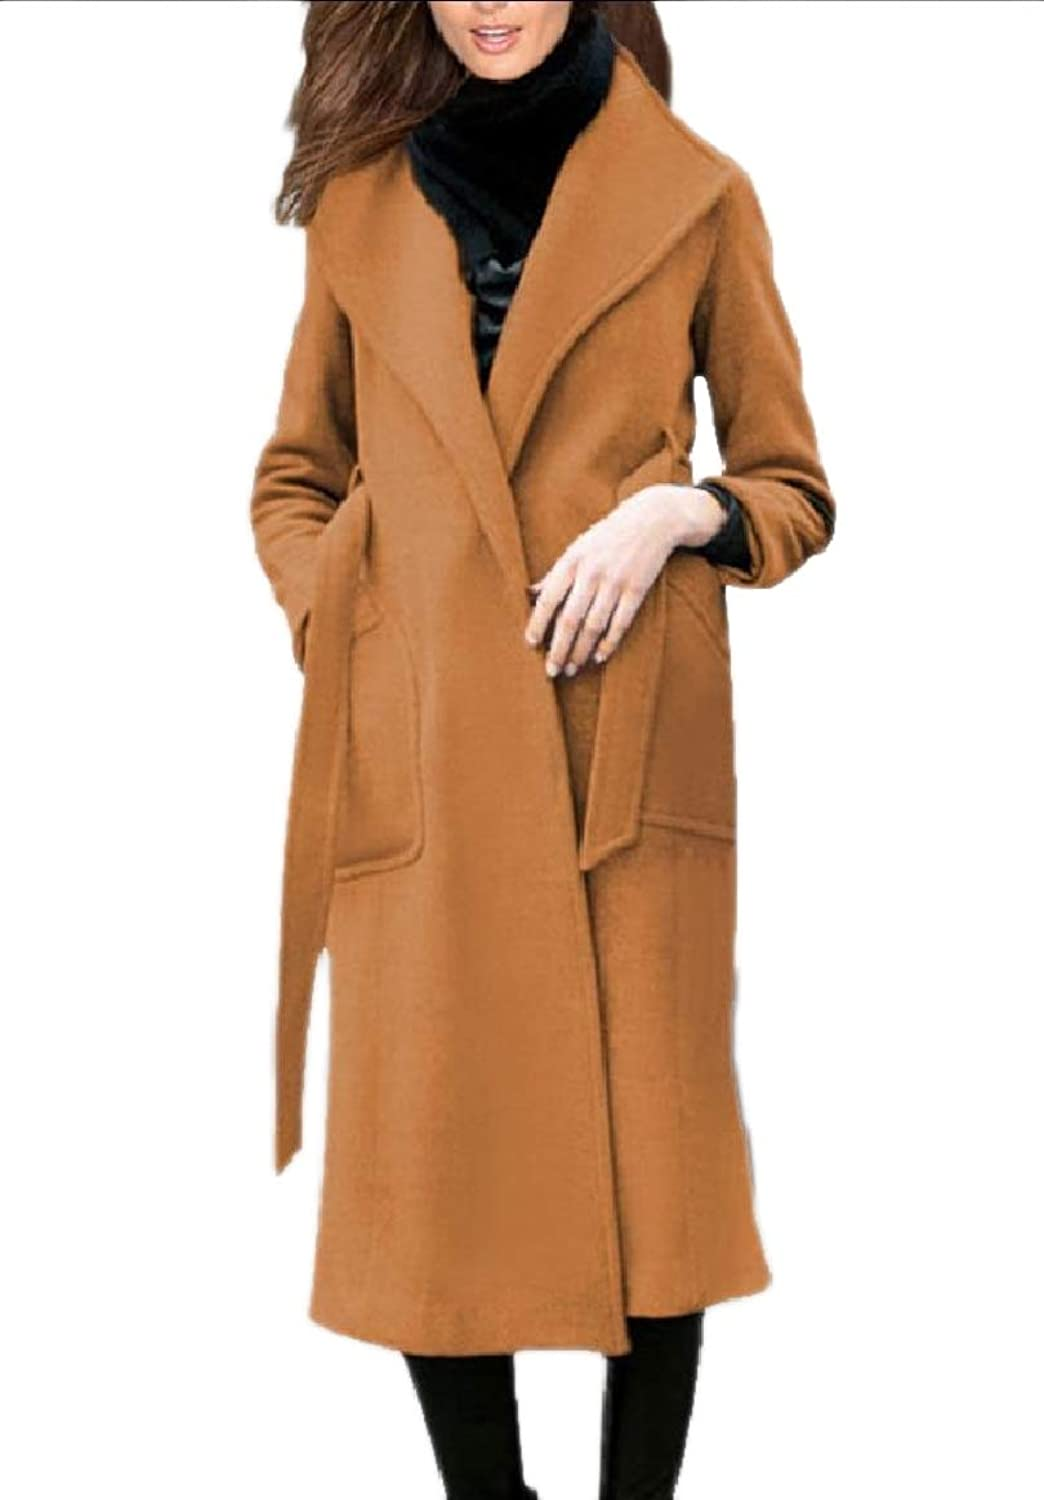 Tootca Women's Fitness Woolen Belted Solid Buttoned Trench Jacket Clothes